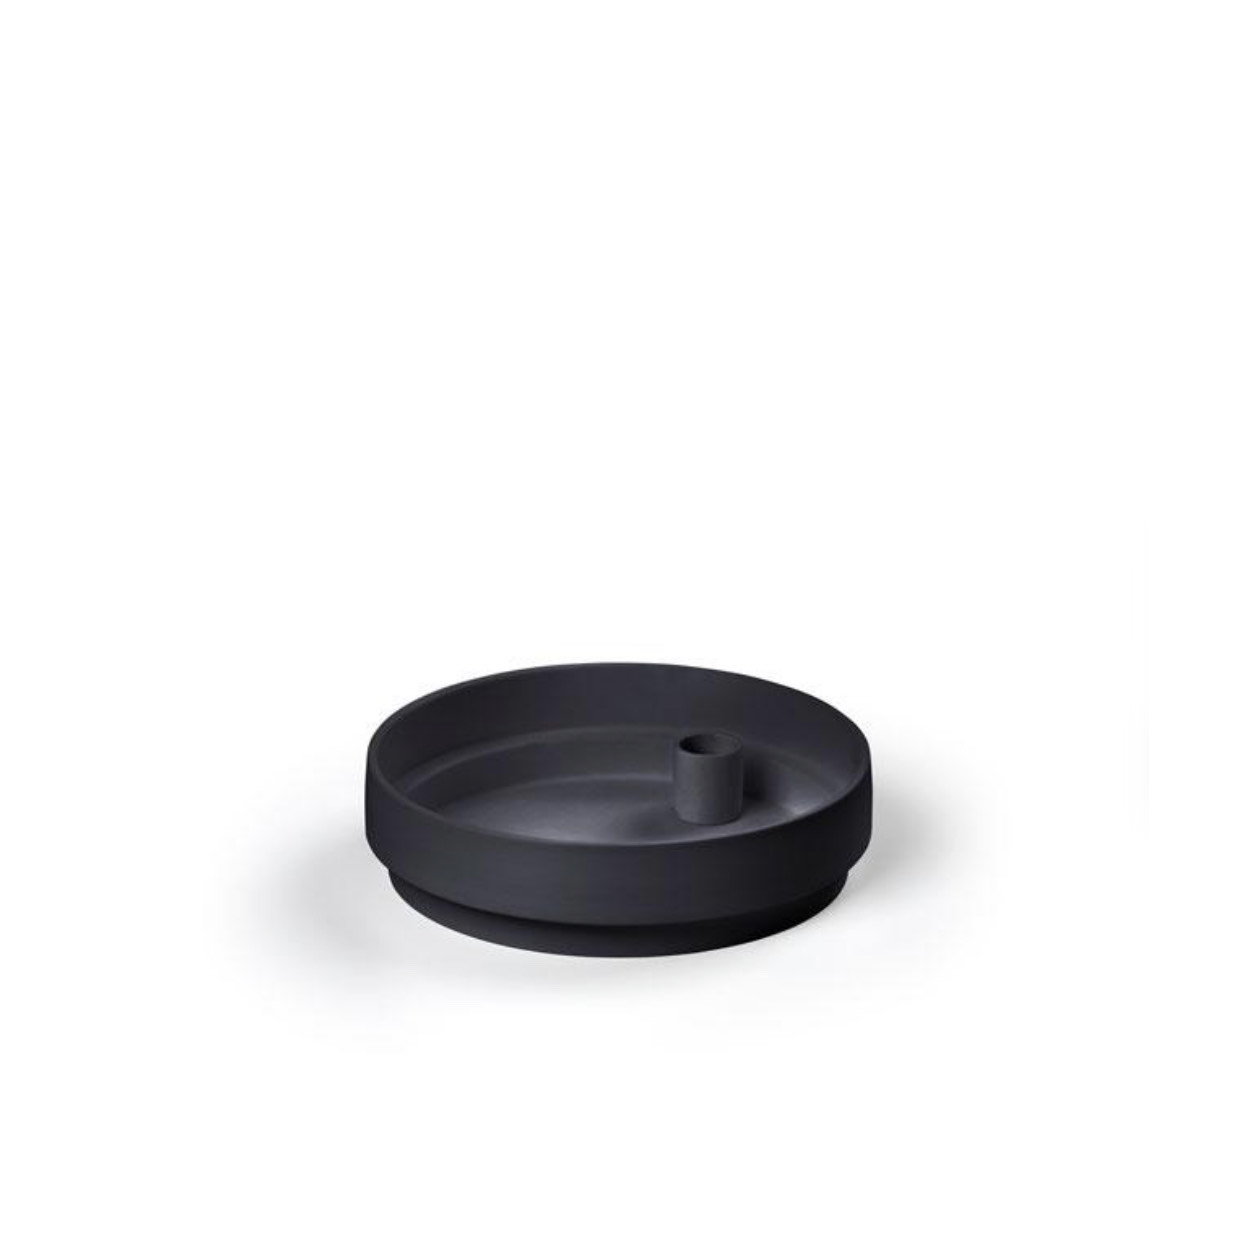 Orbital Step Black Candle Holder in Matte Clay - Large